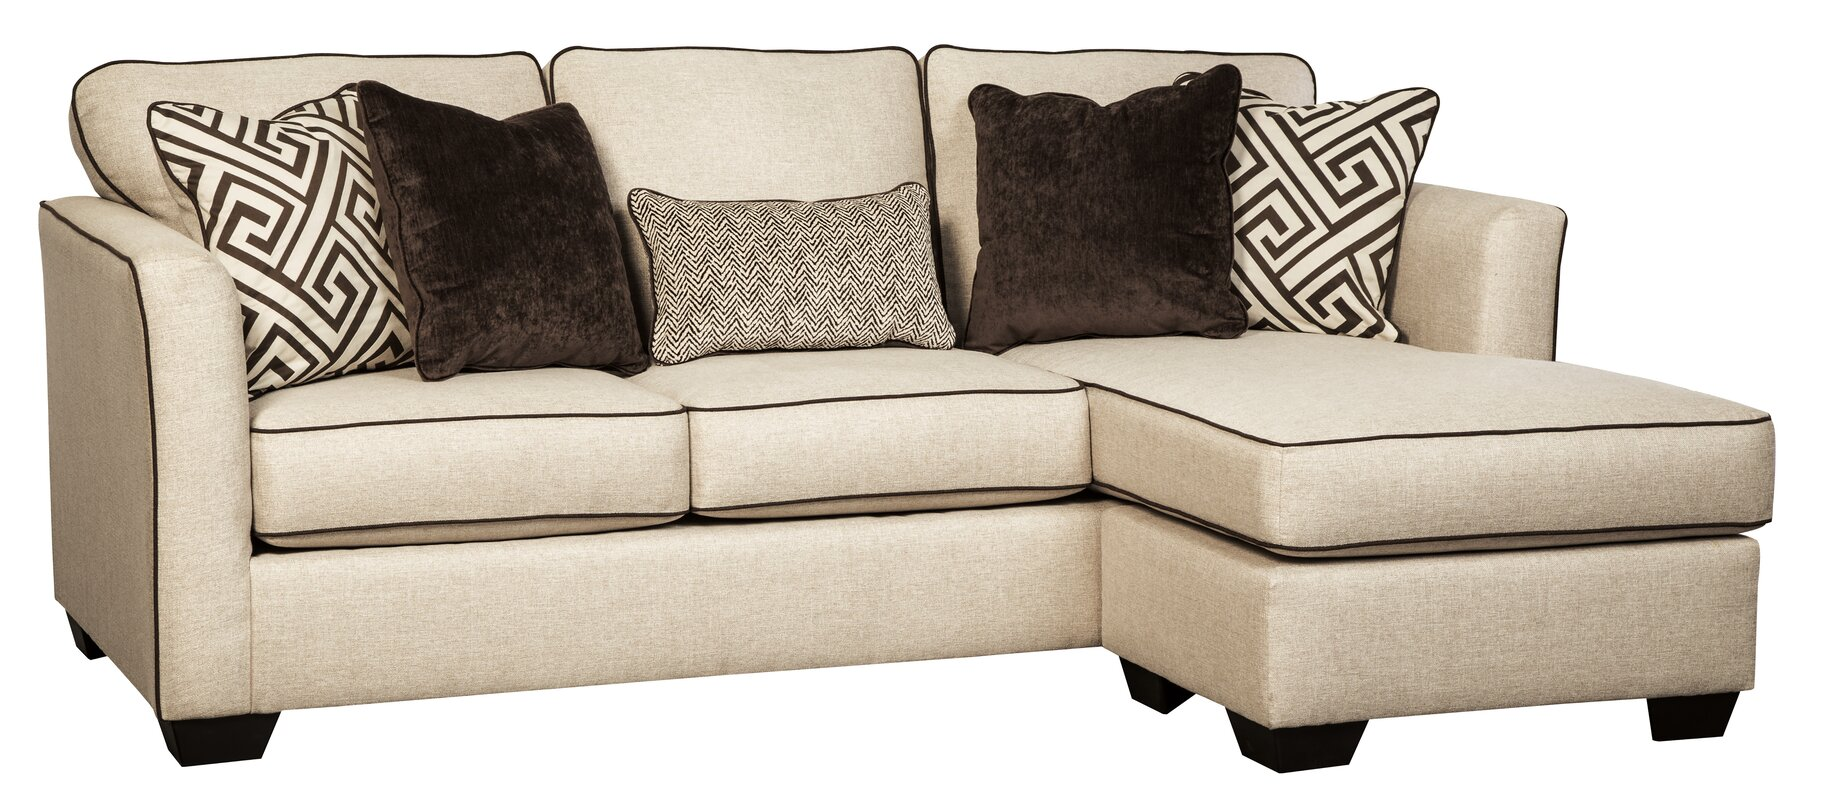 Sleeper sofa chaise beeson fabric queen sleeper chaise for Beeson fabric queen sleeper chaise sofa